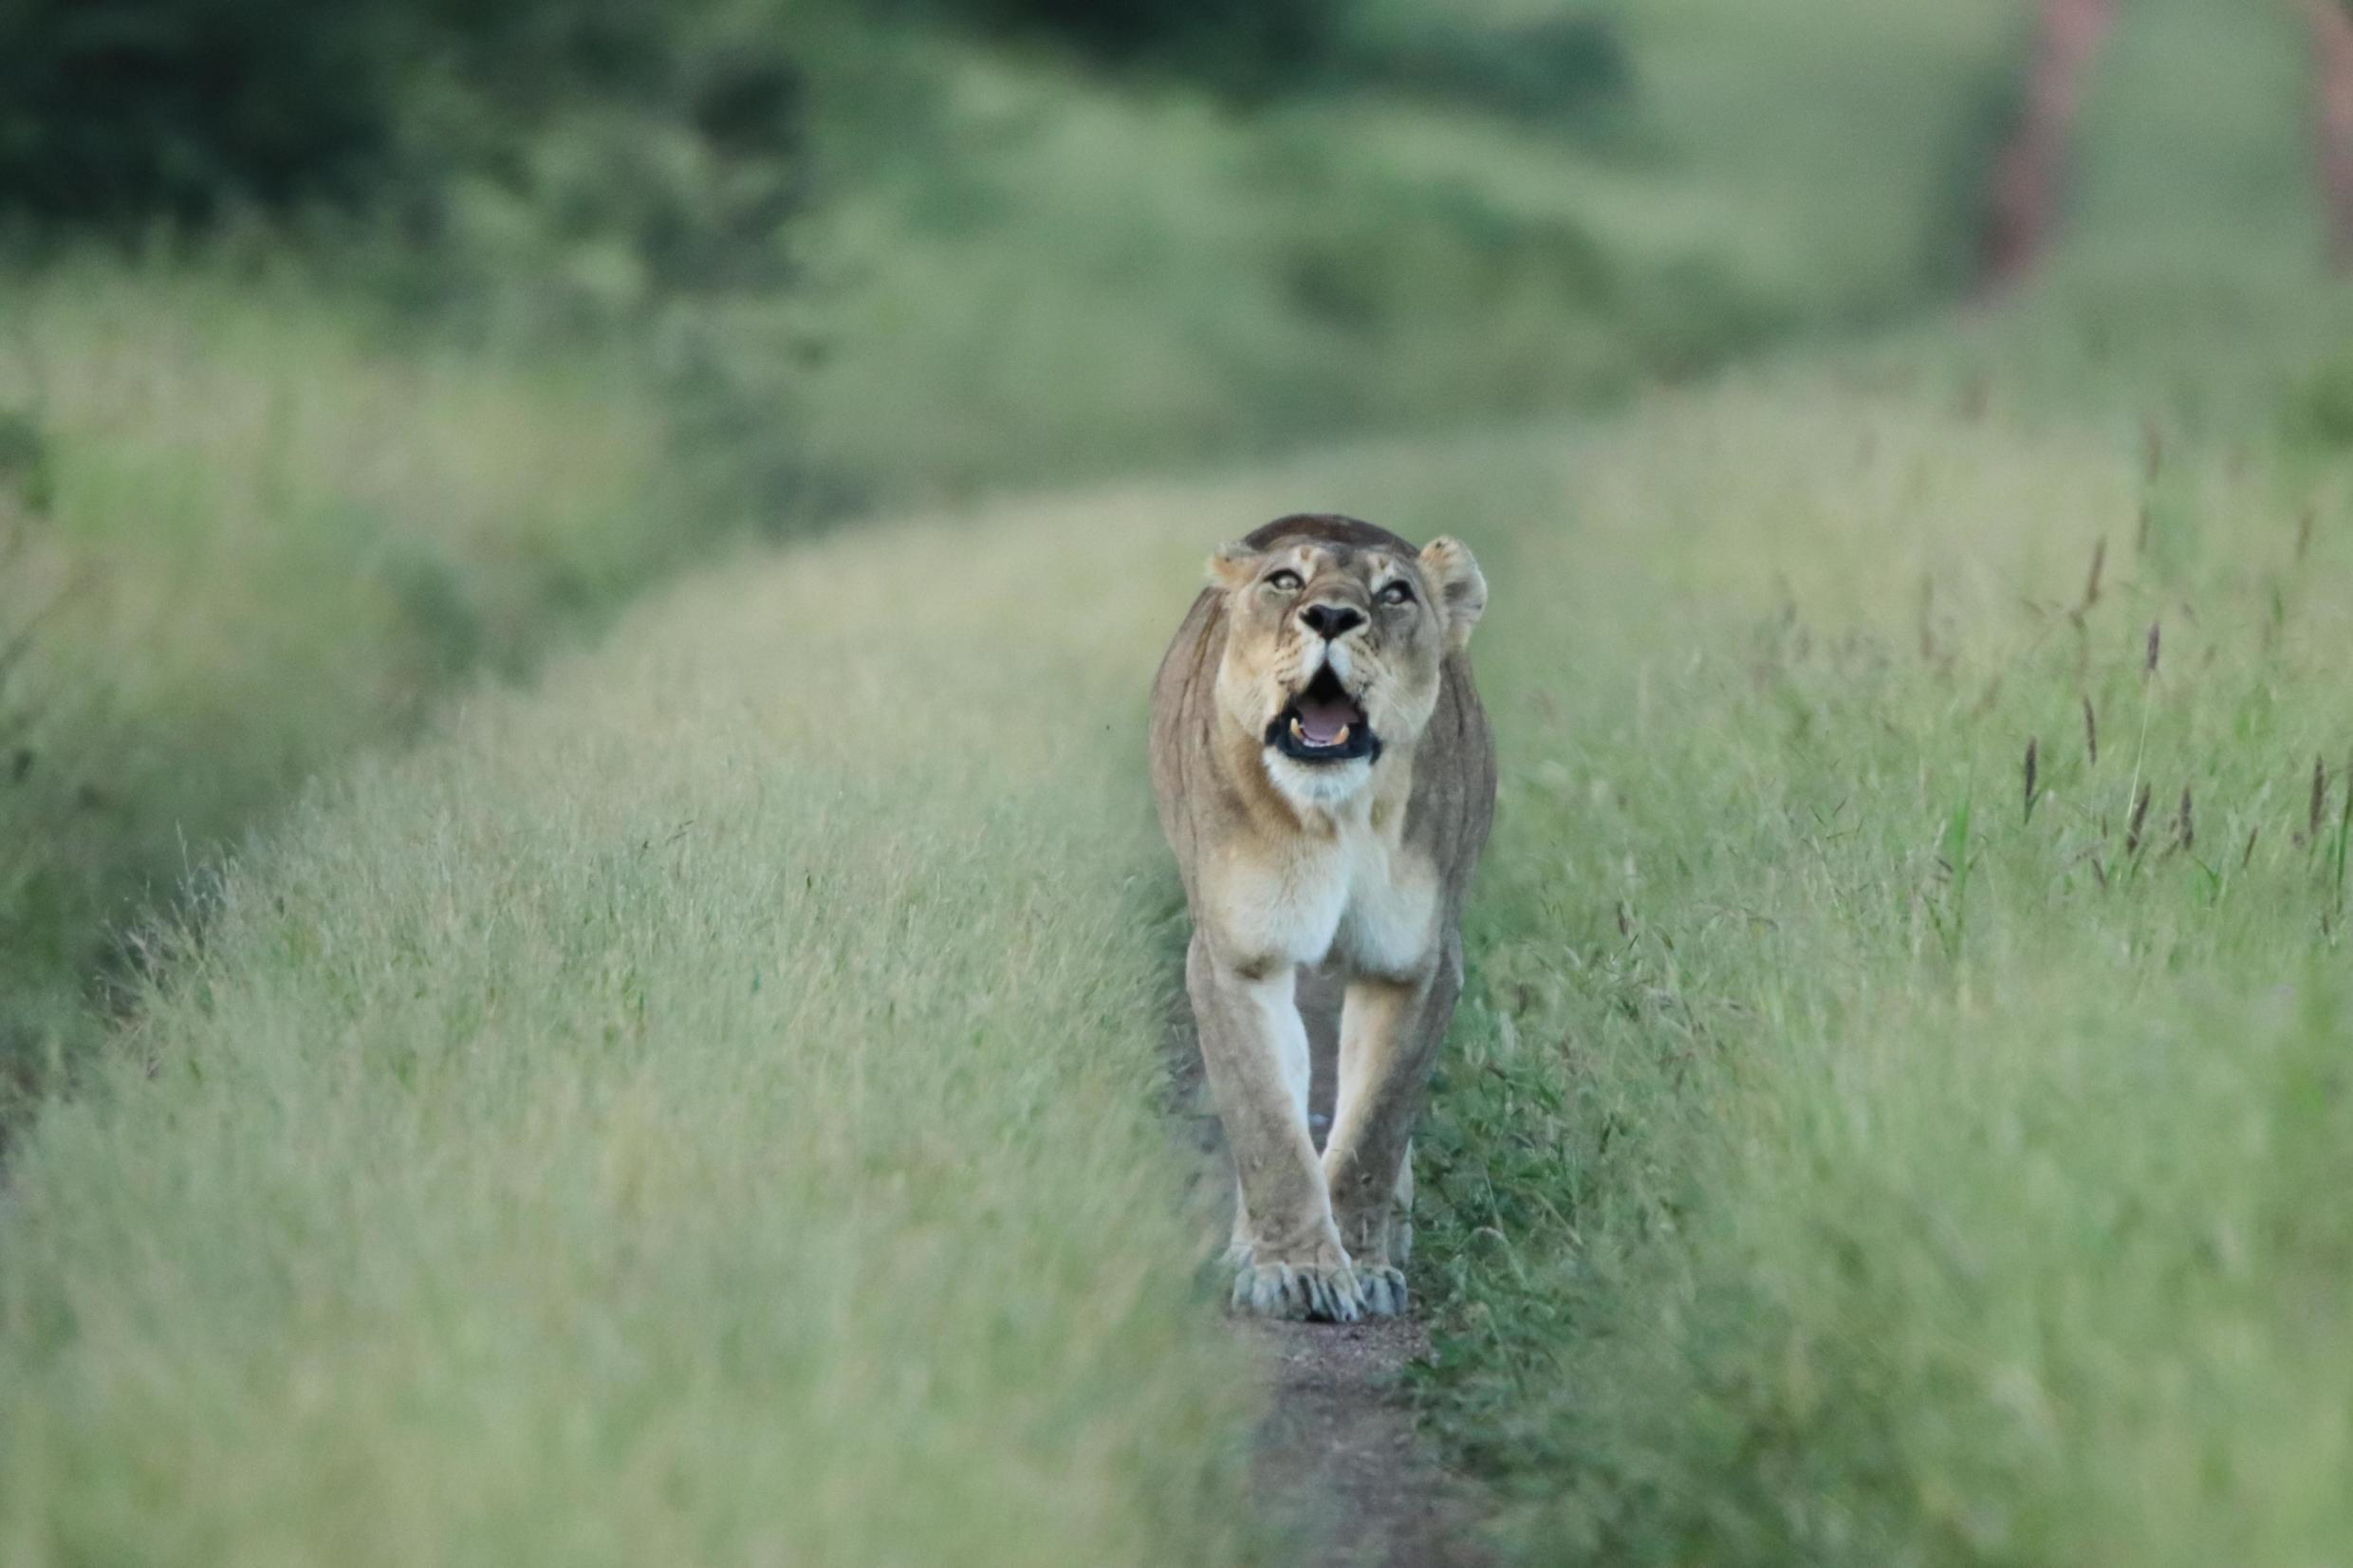 A lioness on the prowl in Zimbabwe's Bubye Valley Conservancy.